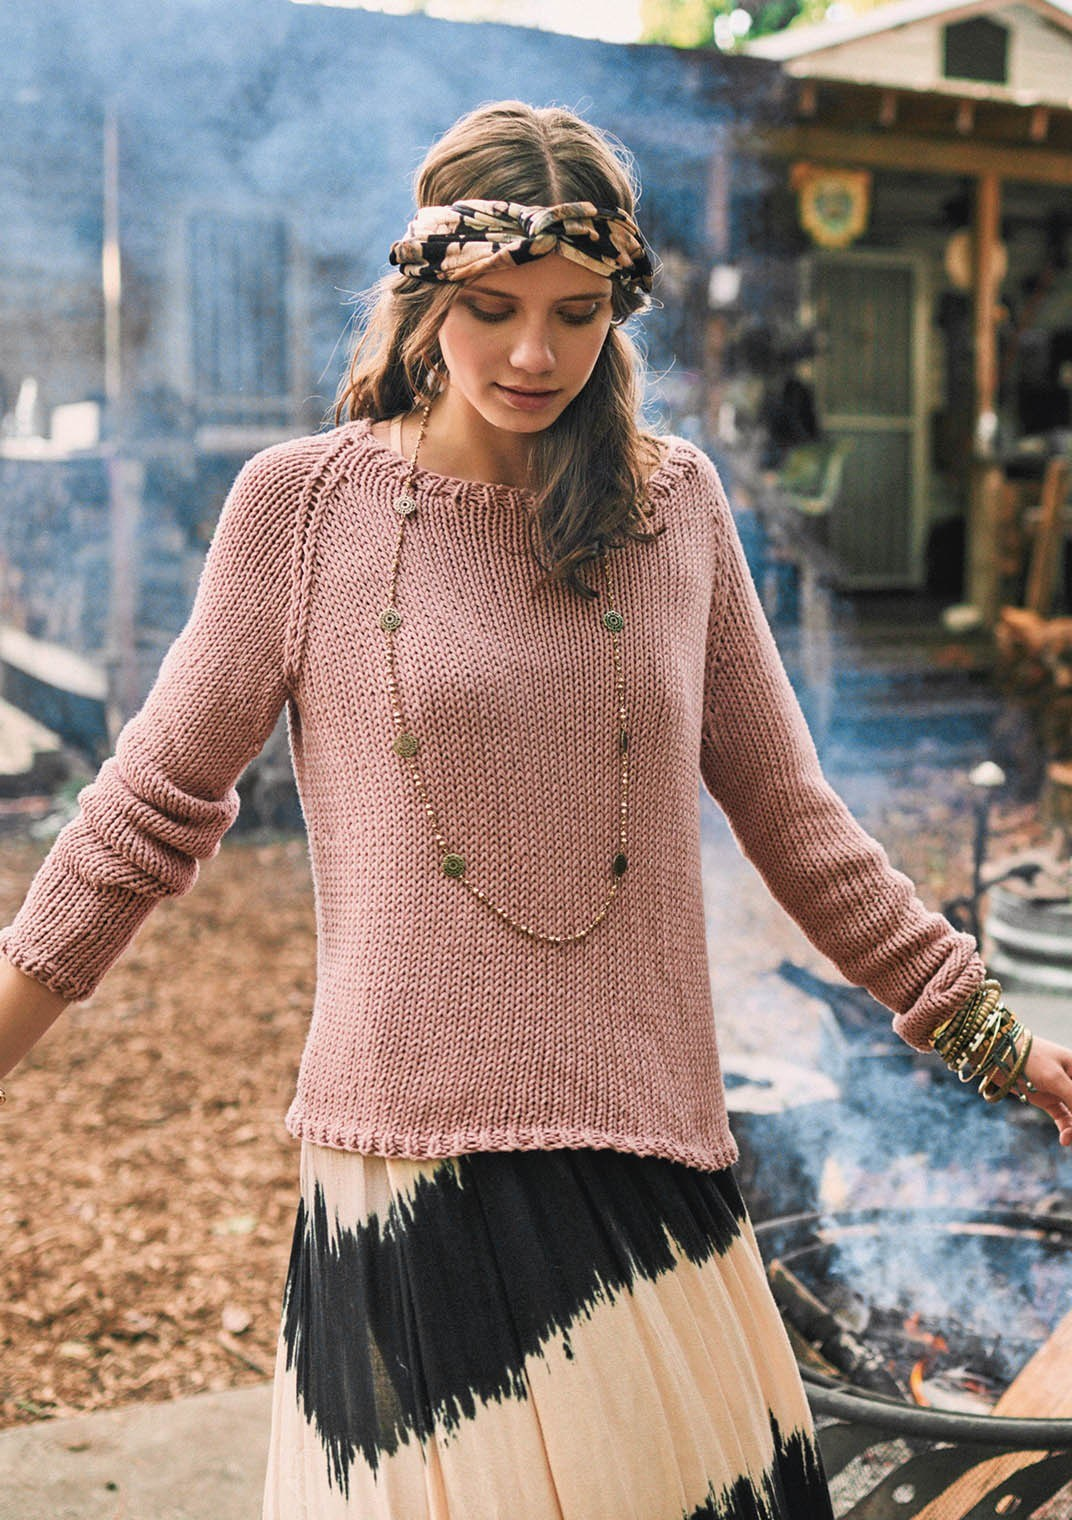 Sandnes strikkehæfte 1707 - model 1 Avery genser (sweater)